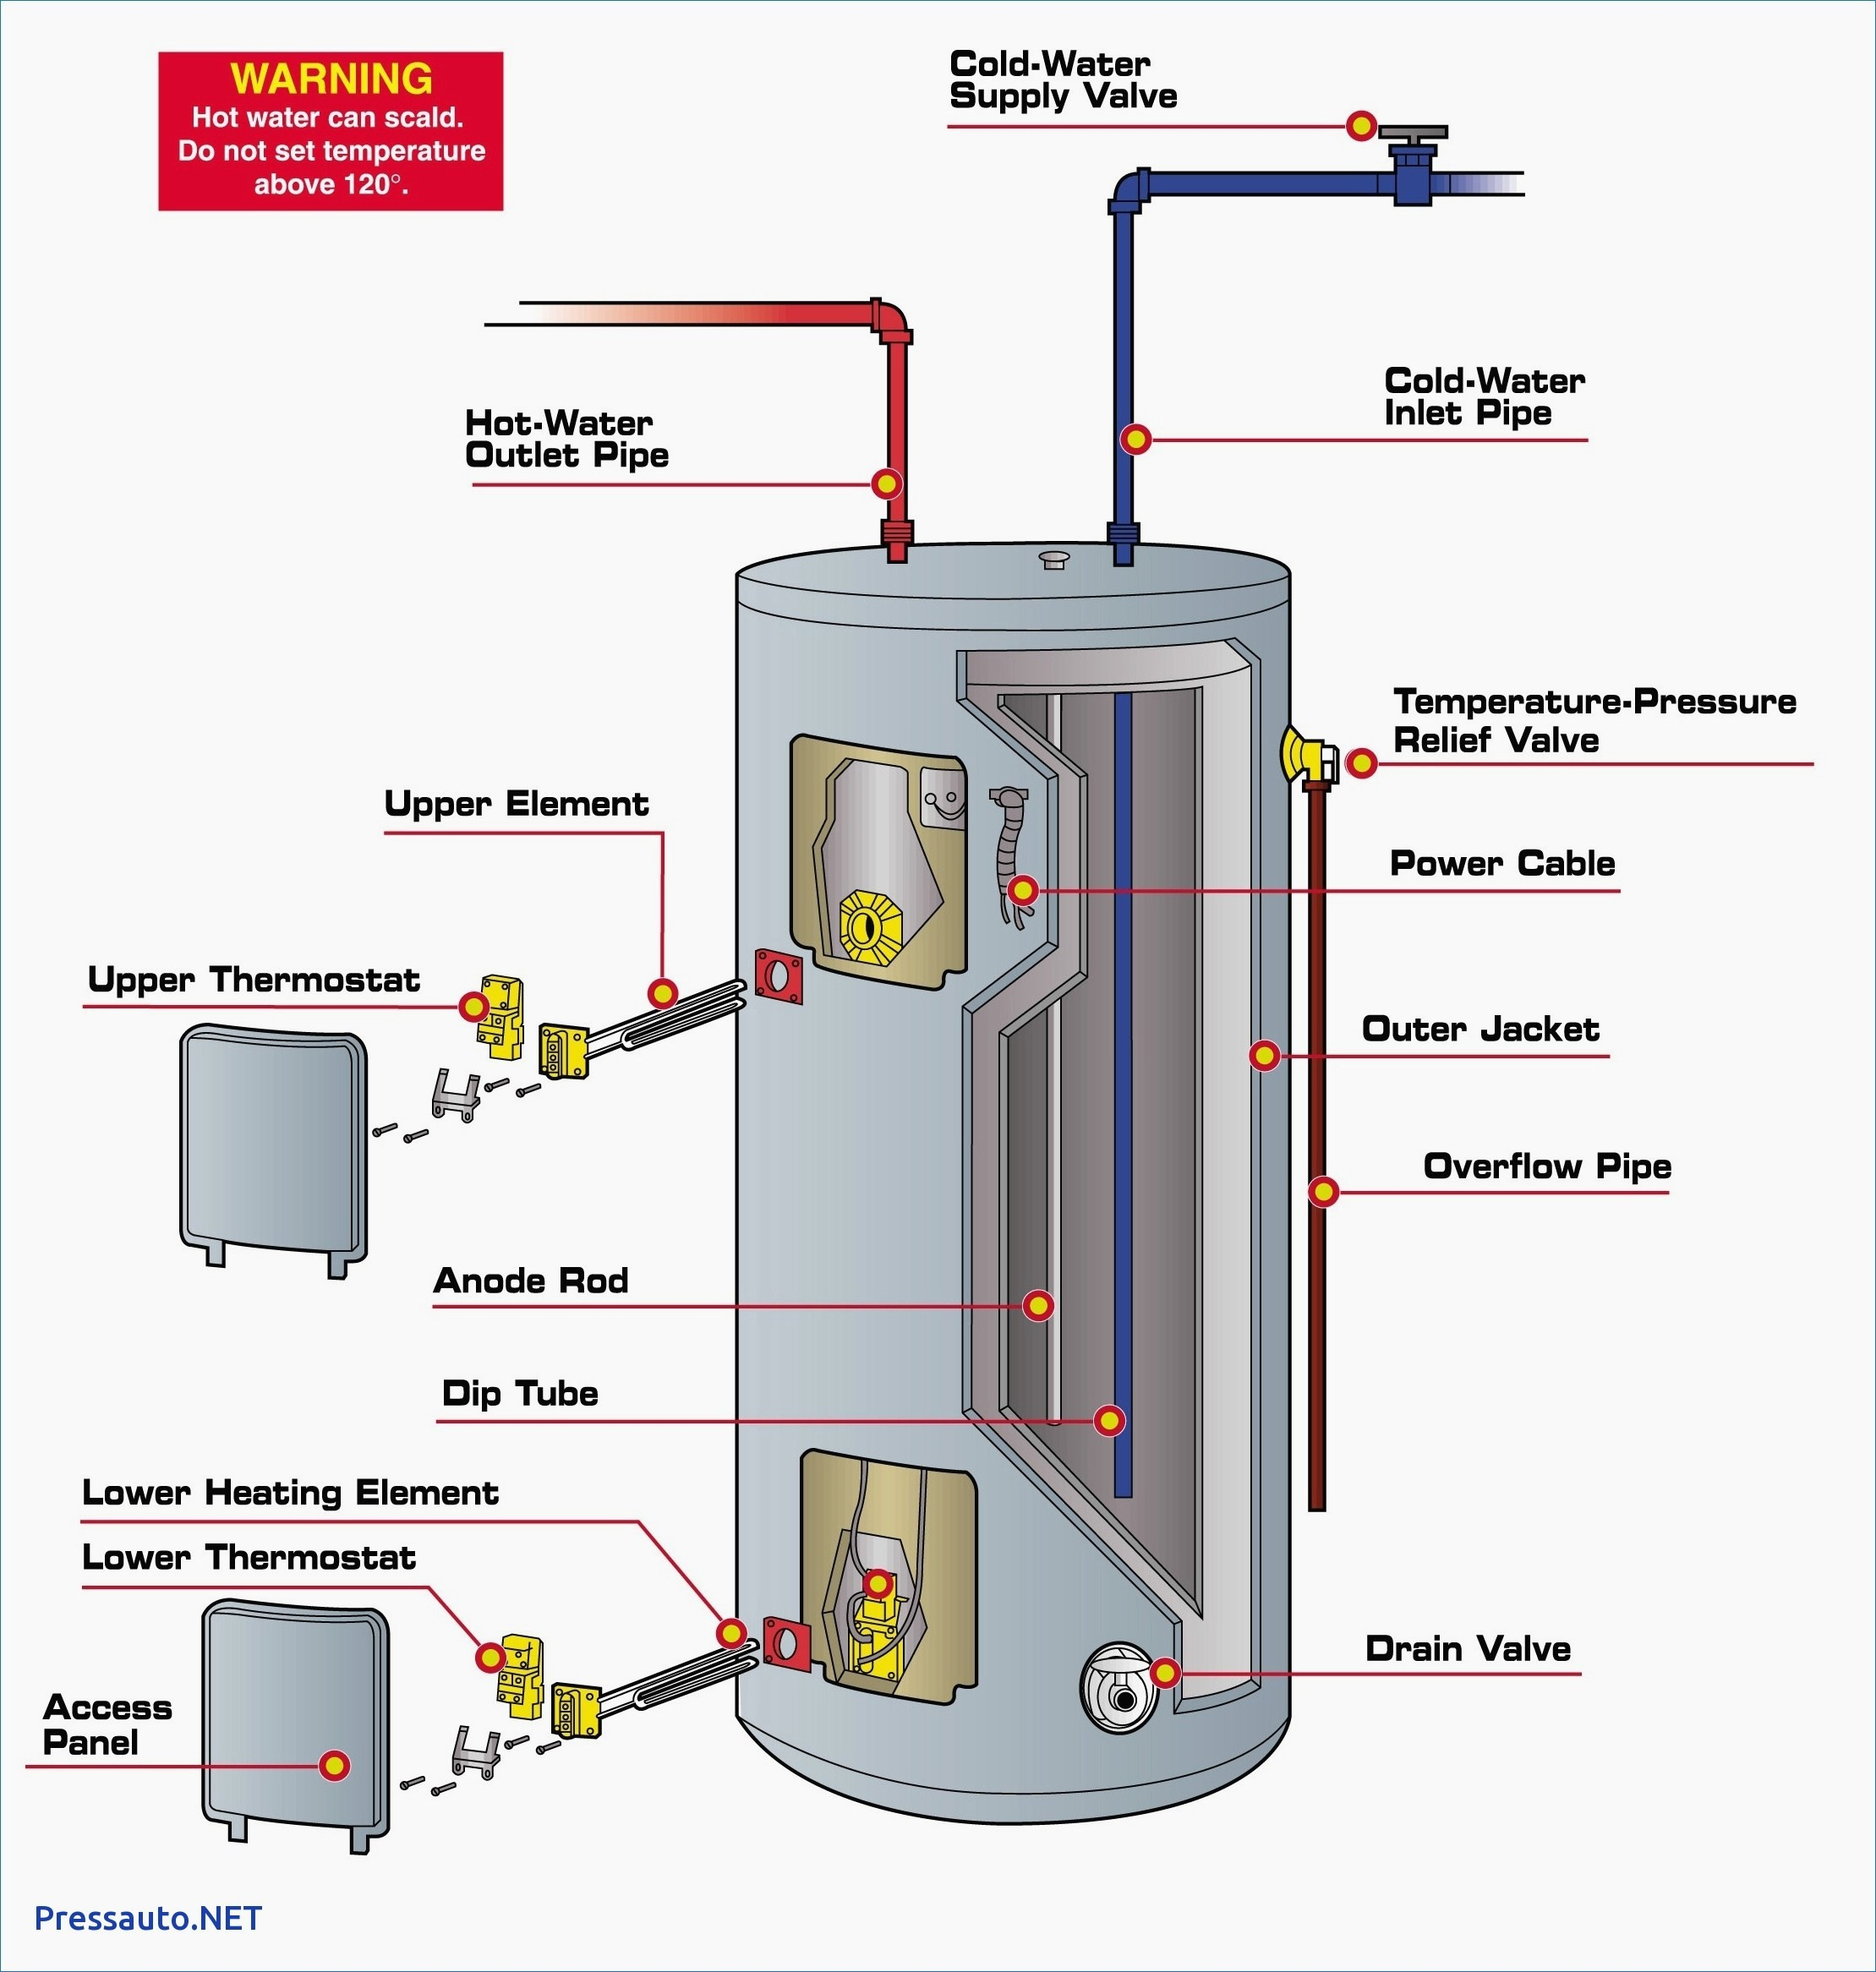 electric water heater thermostat wiring diagram Collection-Wiring Diagram Electric Water Heater Fresh New Hot Water Heater Wiring Diagram Diagram 4-n